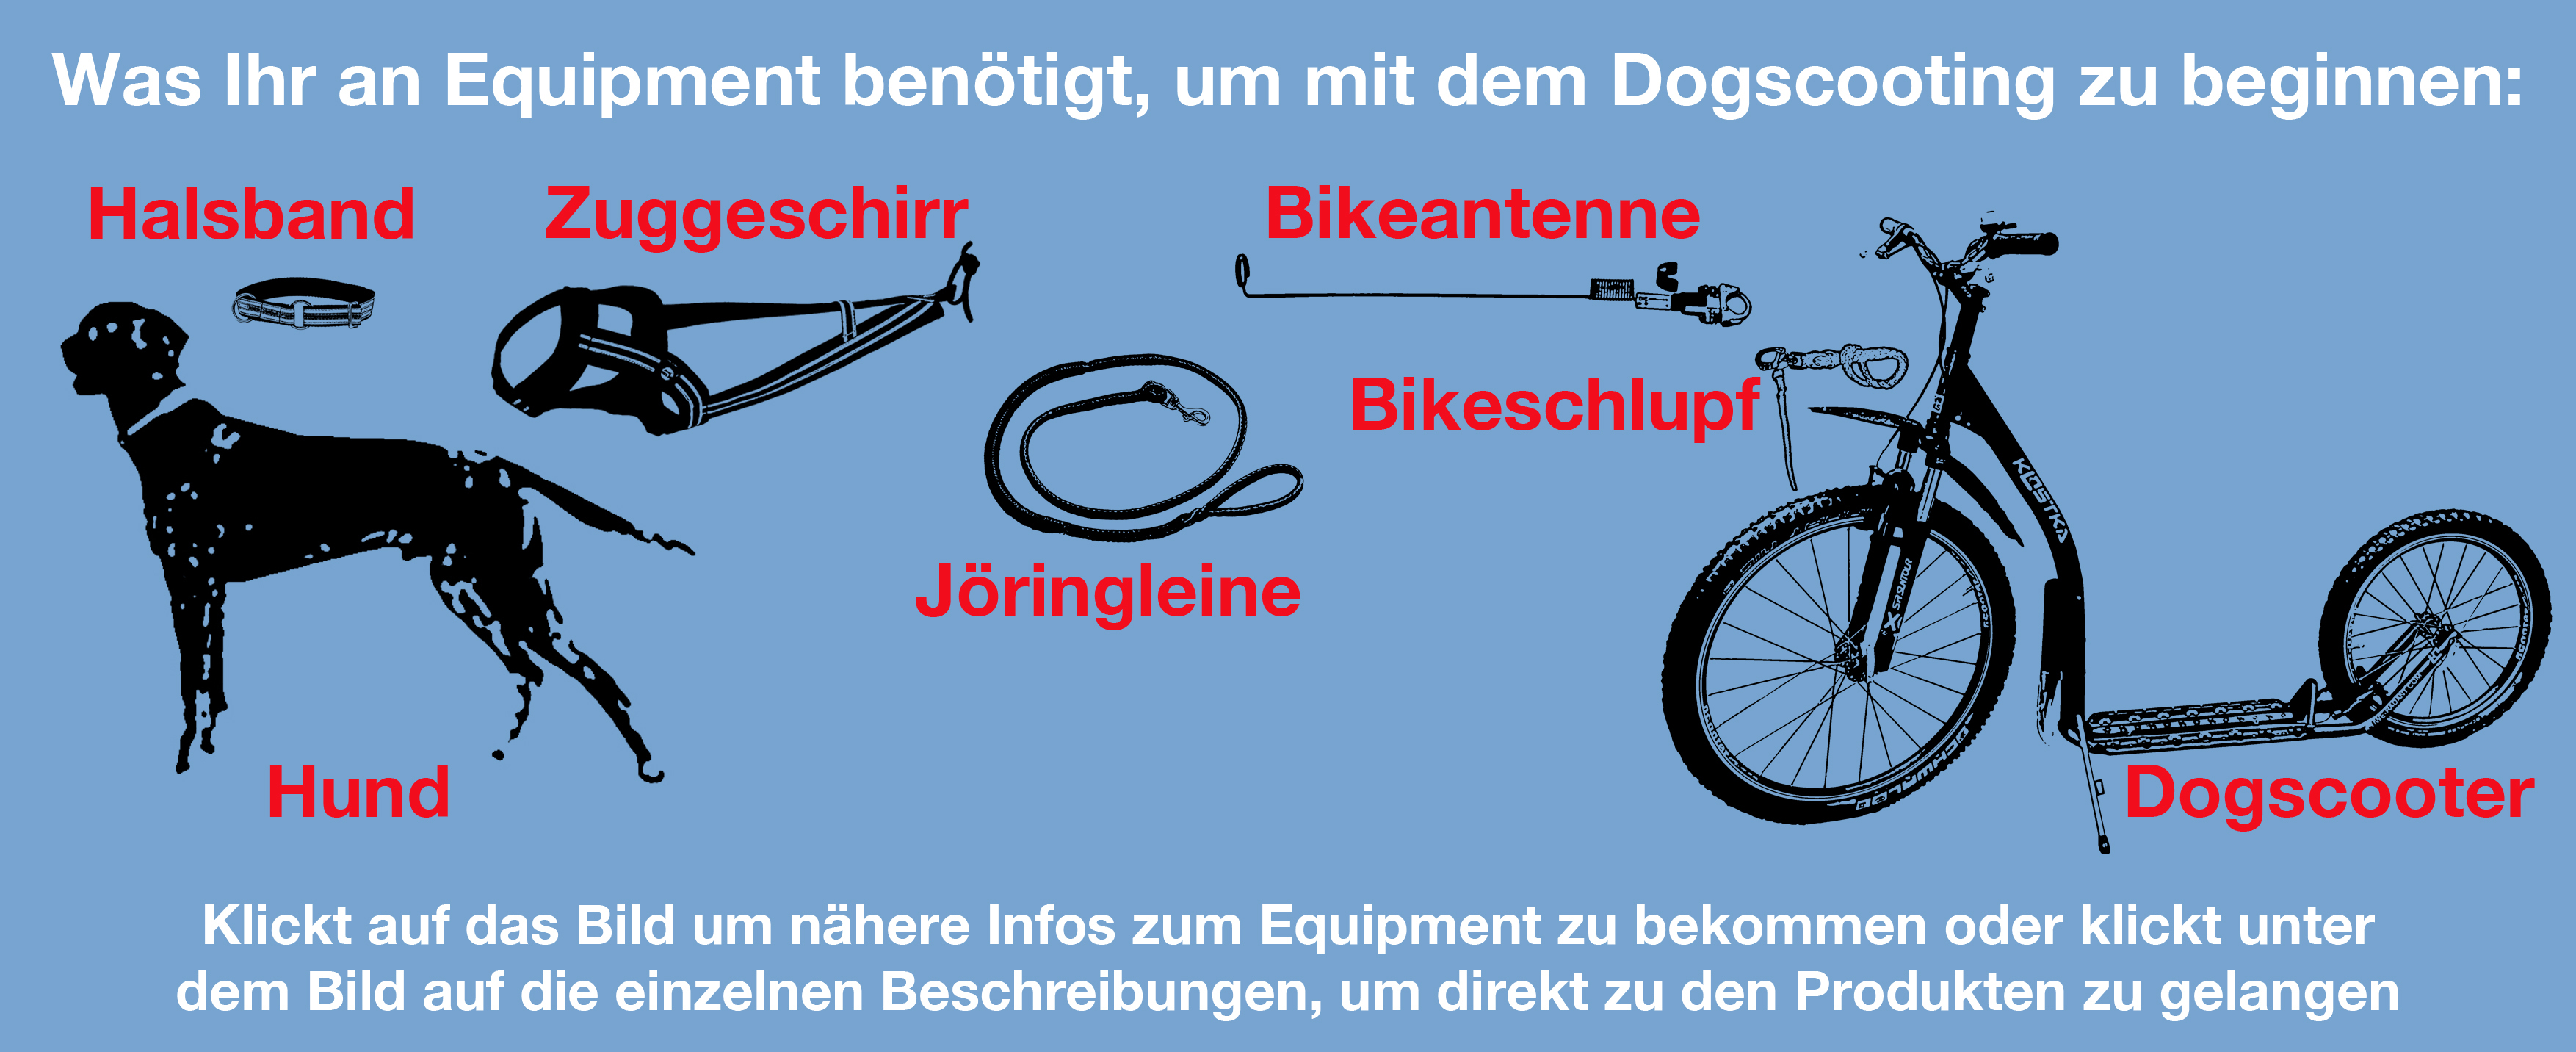 dogscooter_zubehoer